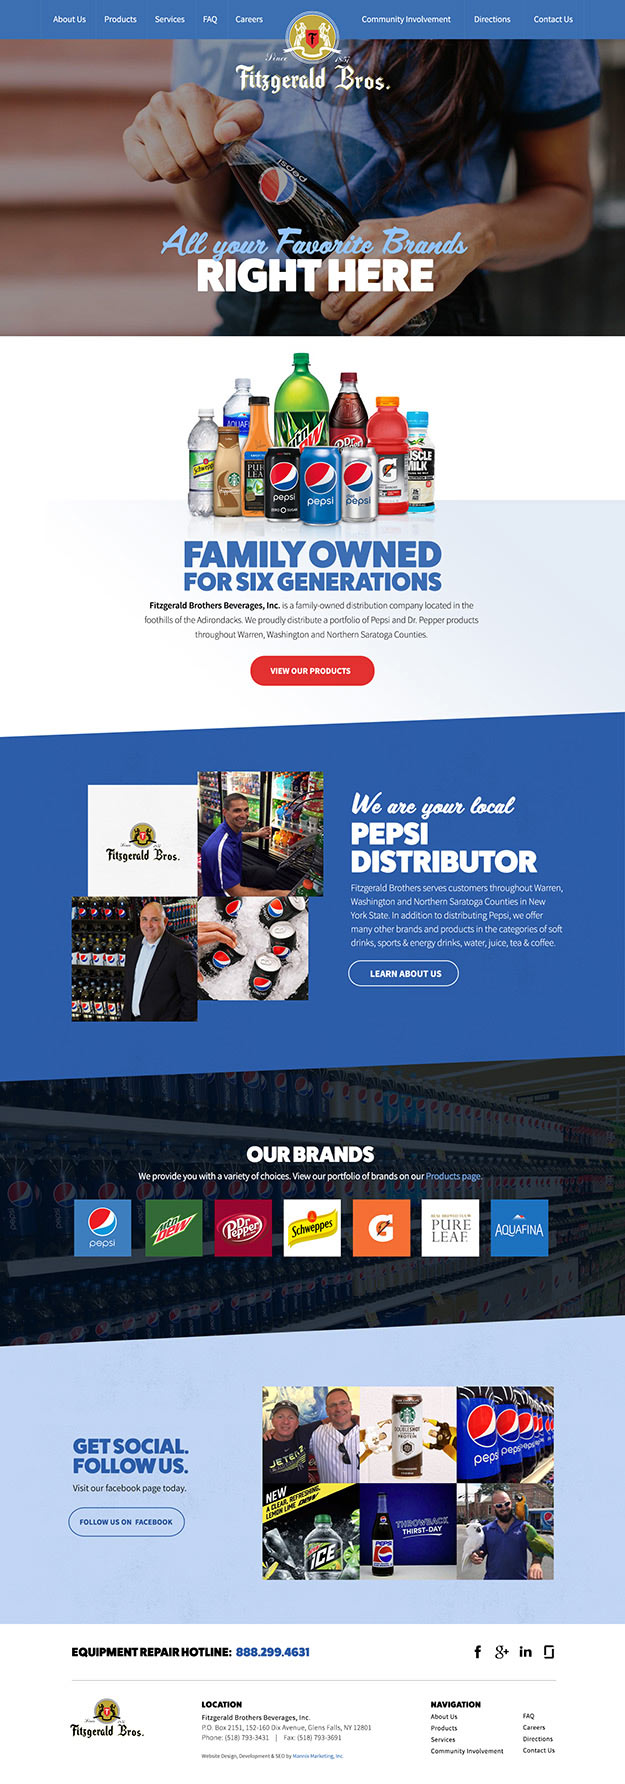 Full view of Fitzgerald Bros. homepage of their responsive website